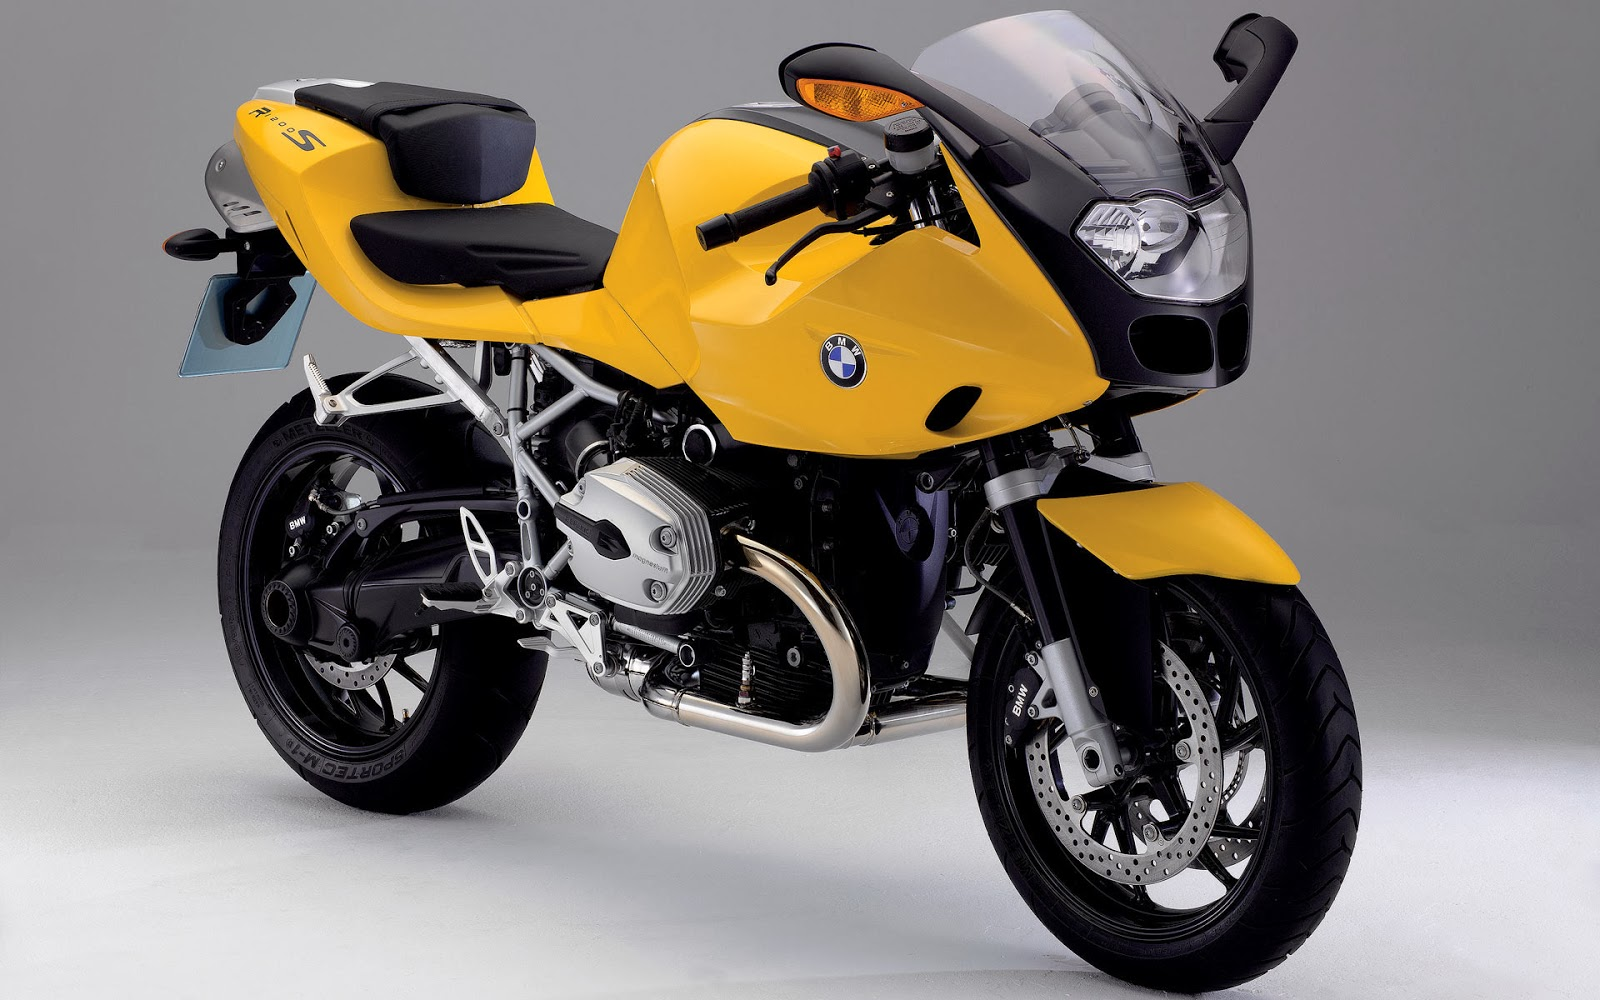 bike cars hd wallpapers bmw motorcycle in hd wallpapers. Black Bedroom Furniture Sets. Home Design Ideas